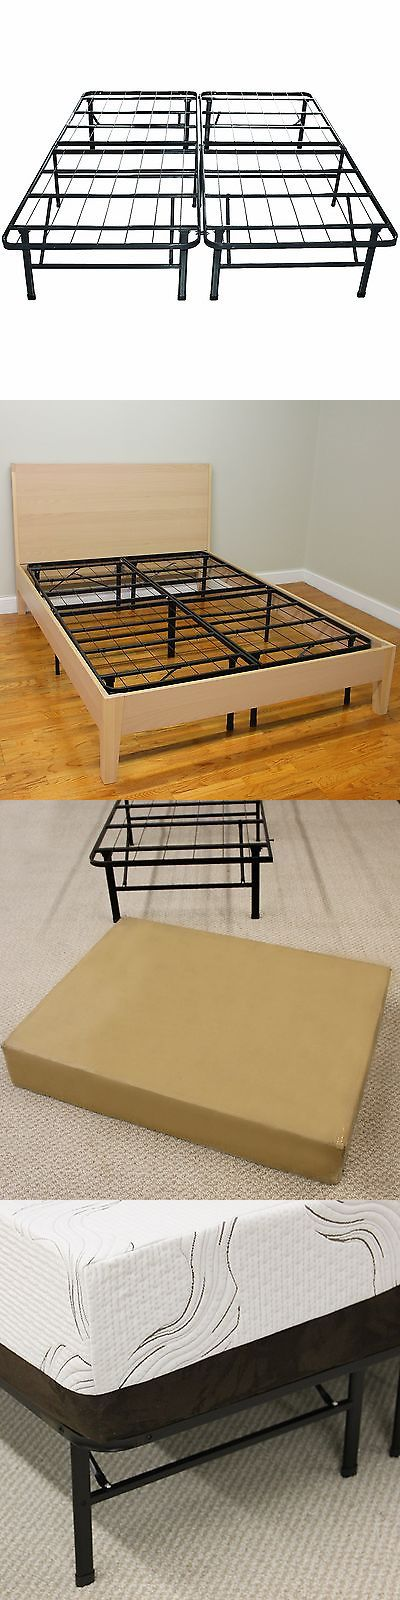 Beds and Bed Frames 175758: Heavy Duty Metal Bed Frame Mattress Foundation, King Size Free Shipping, New -> BUY IT NOW ONLY: $109.99 on eBay!